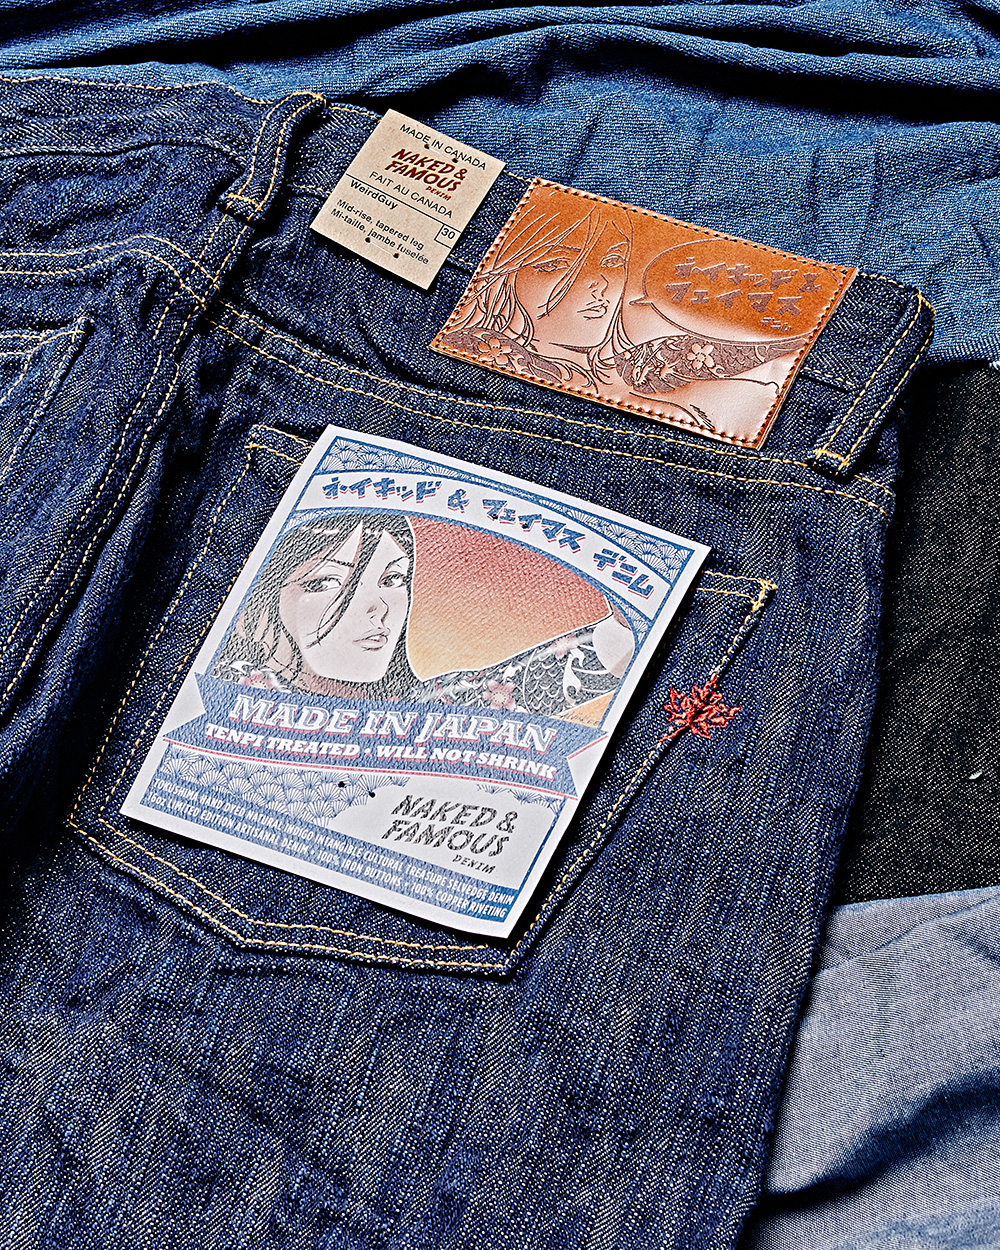 [NAKED&FAMOUS] MIJ8 INTANGIBLE CULTURE TREASURE HAND DYED SELVEDGE